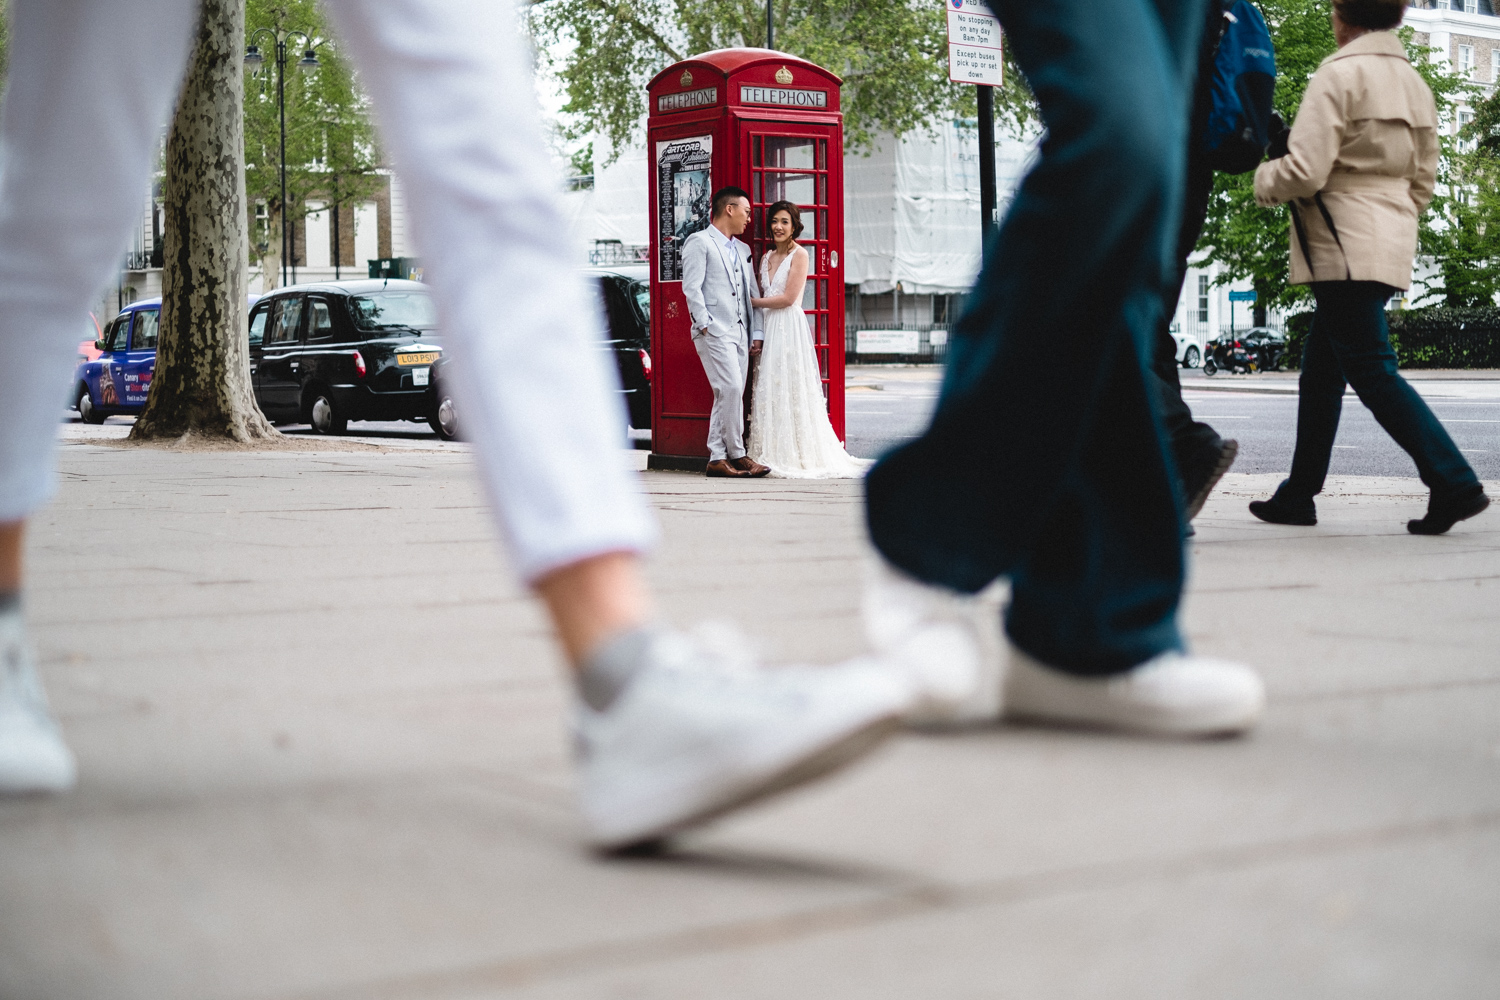 London pre-wedding photos - street photography style